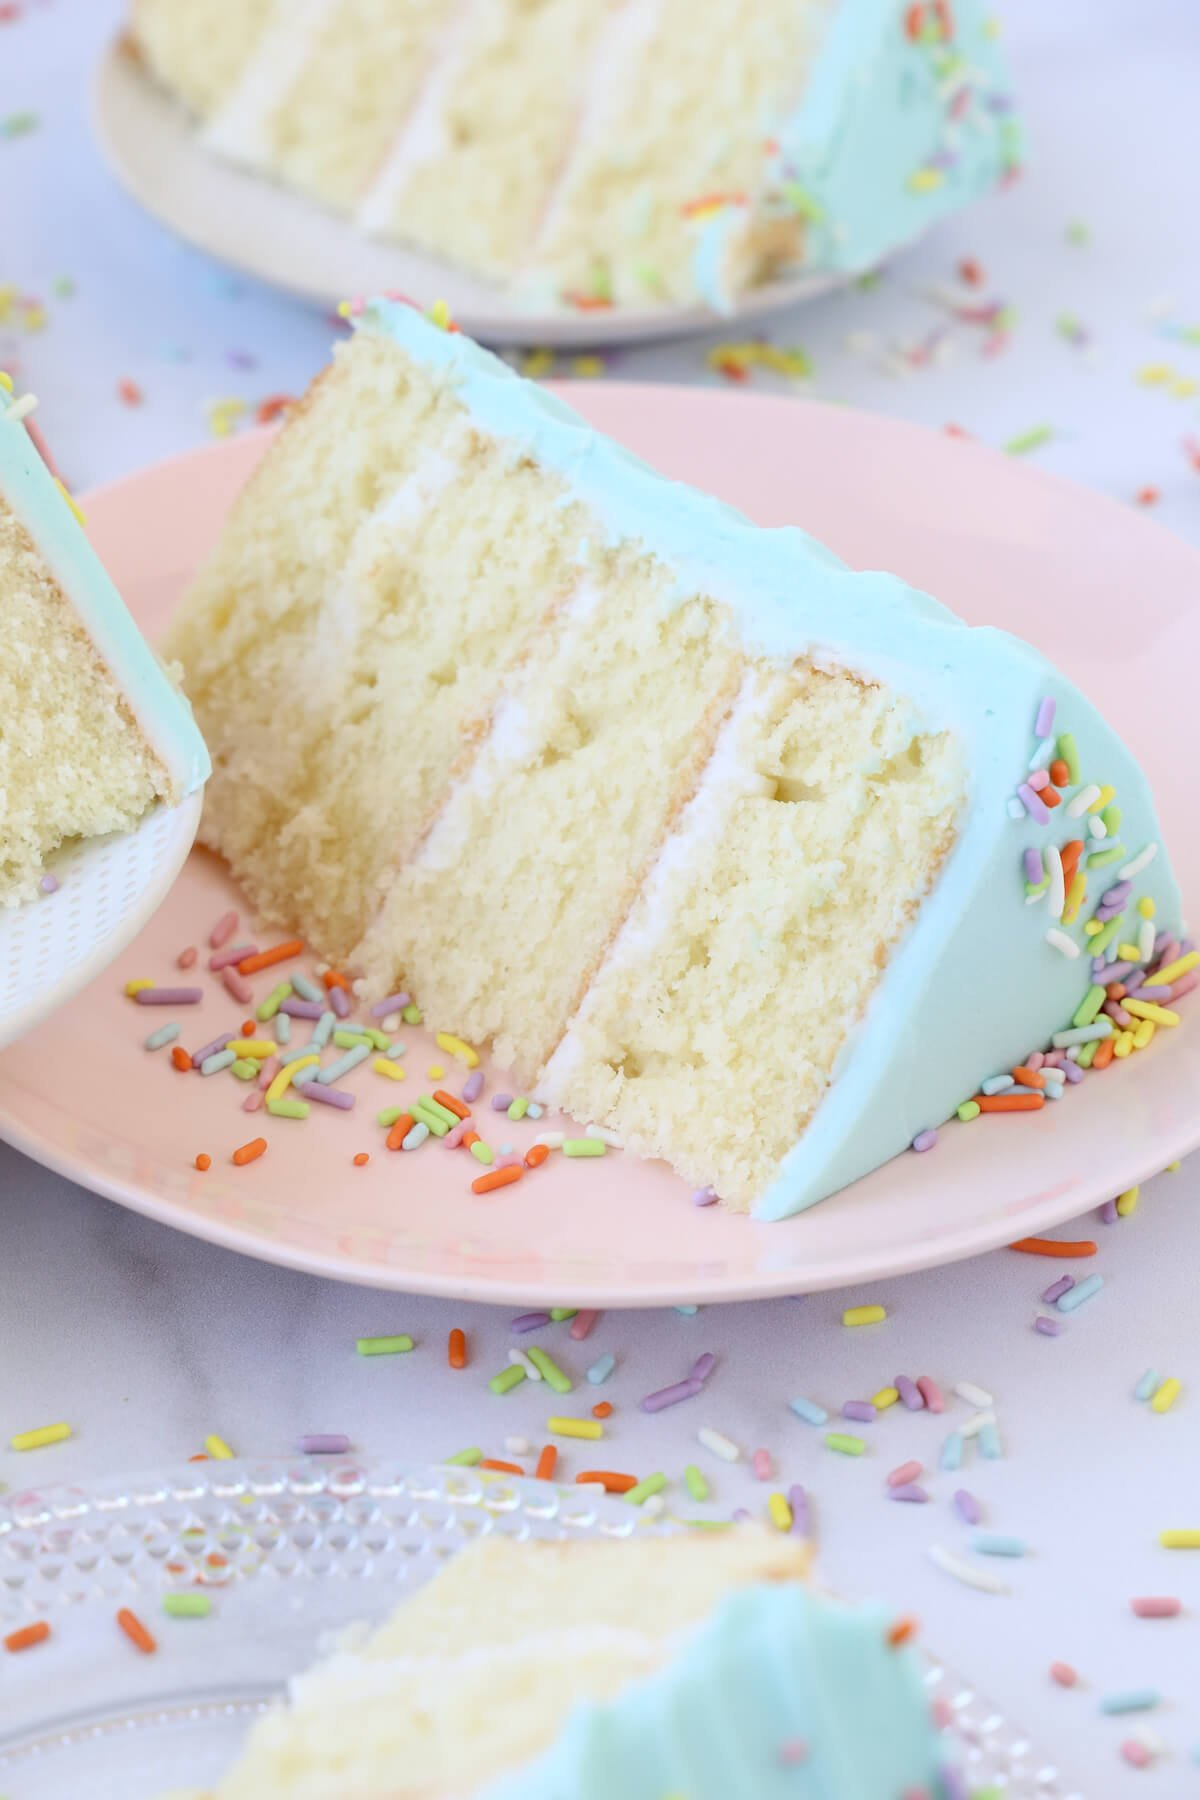 a slice of vanilla cake on a pink plate with rainbow sprinkles